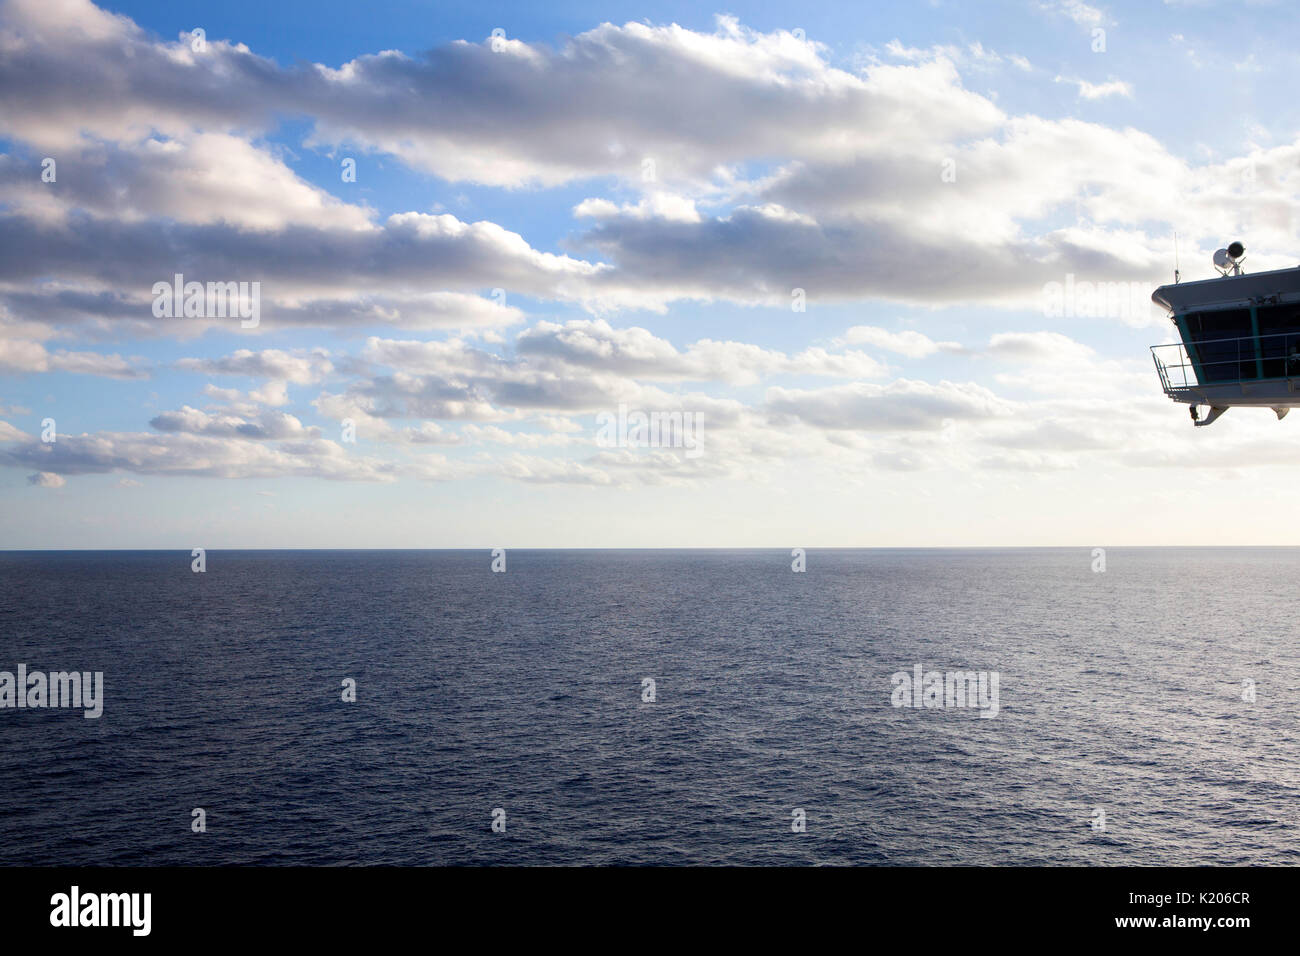 Cruising at late afternoon in summer in the Mediterranean Sea on the Royal Caribbean Navigator of the Seas - Stock Image